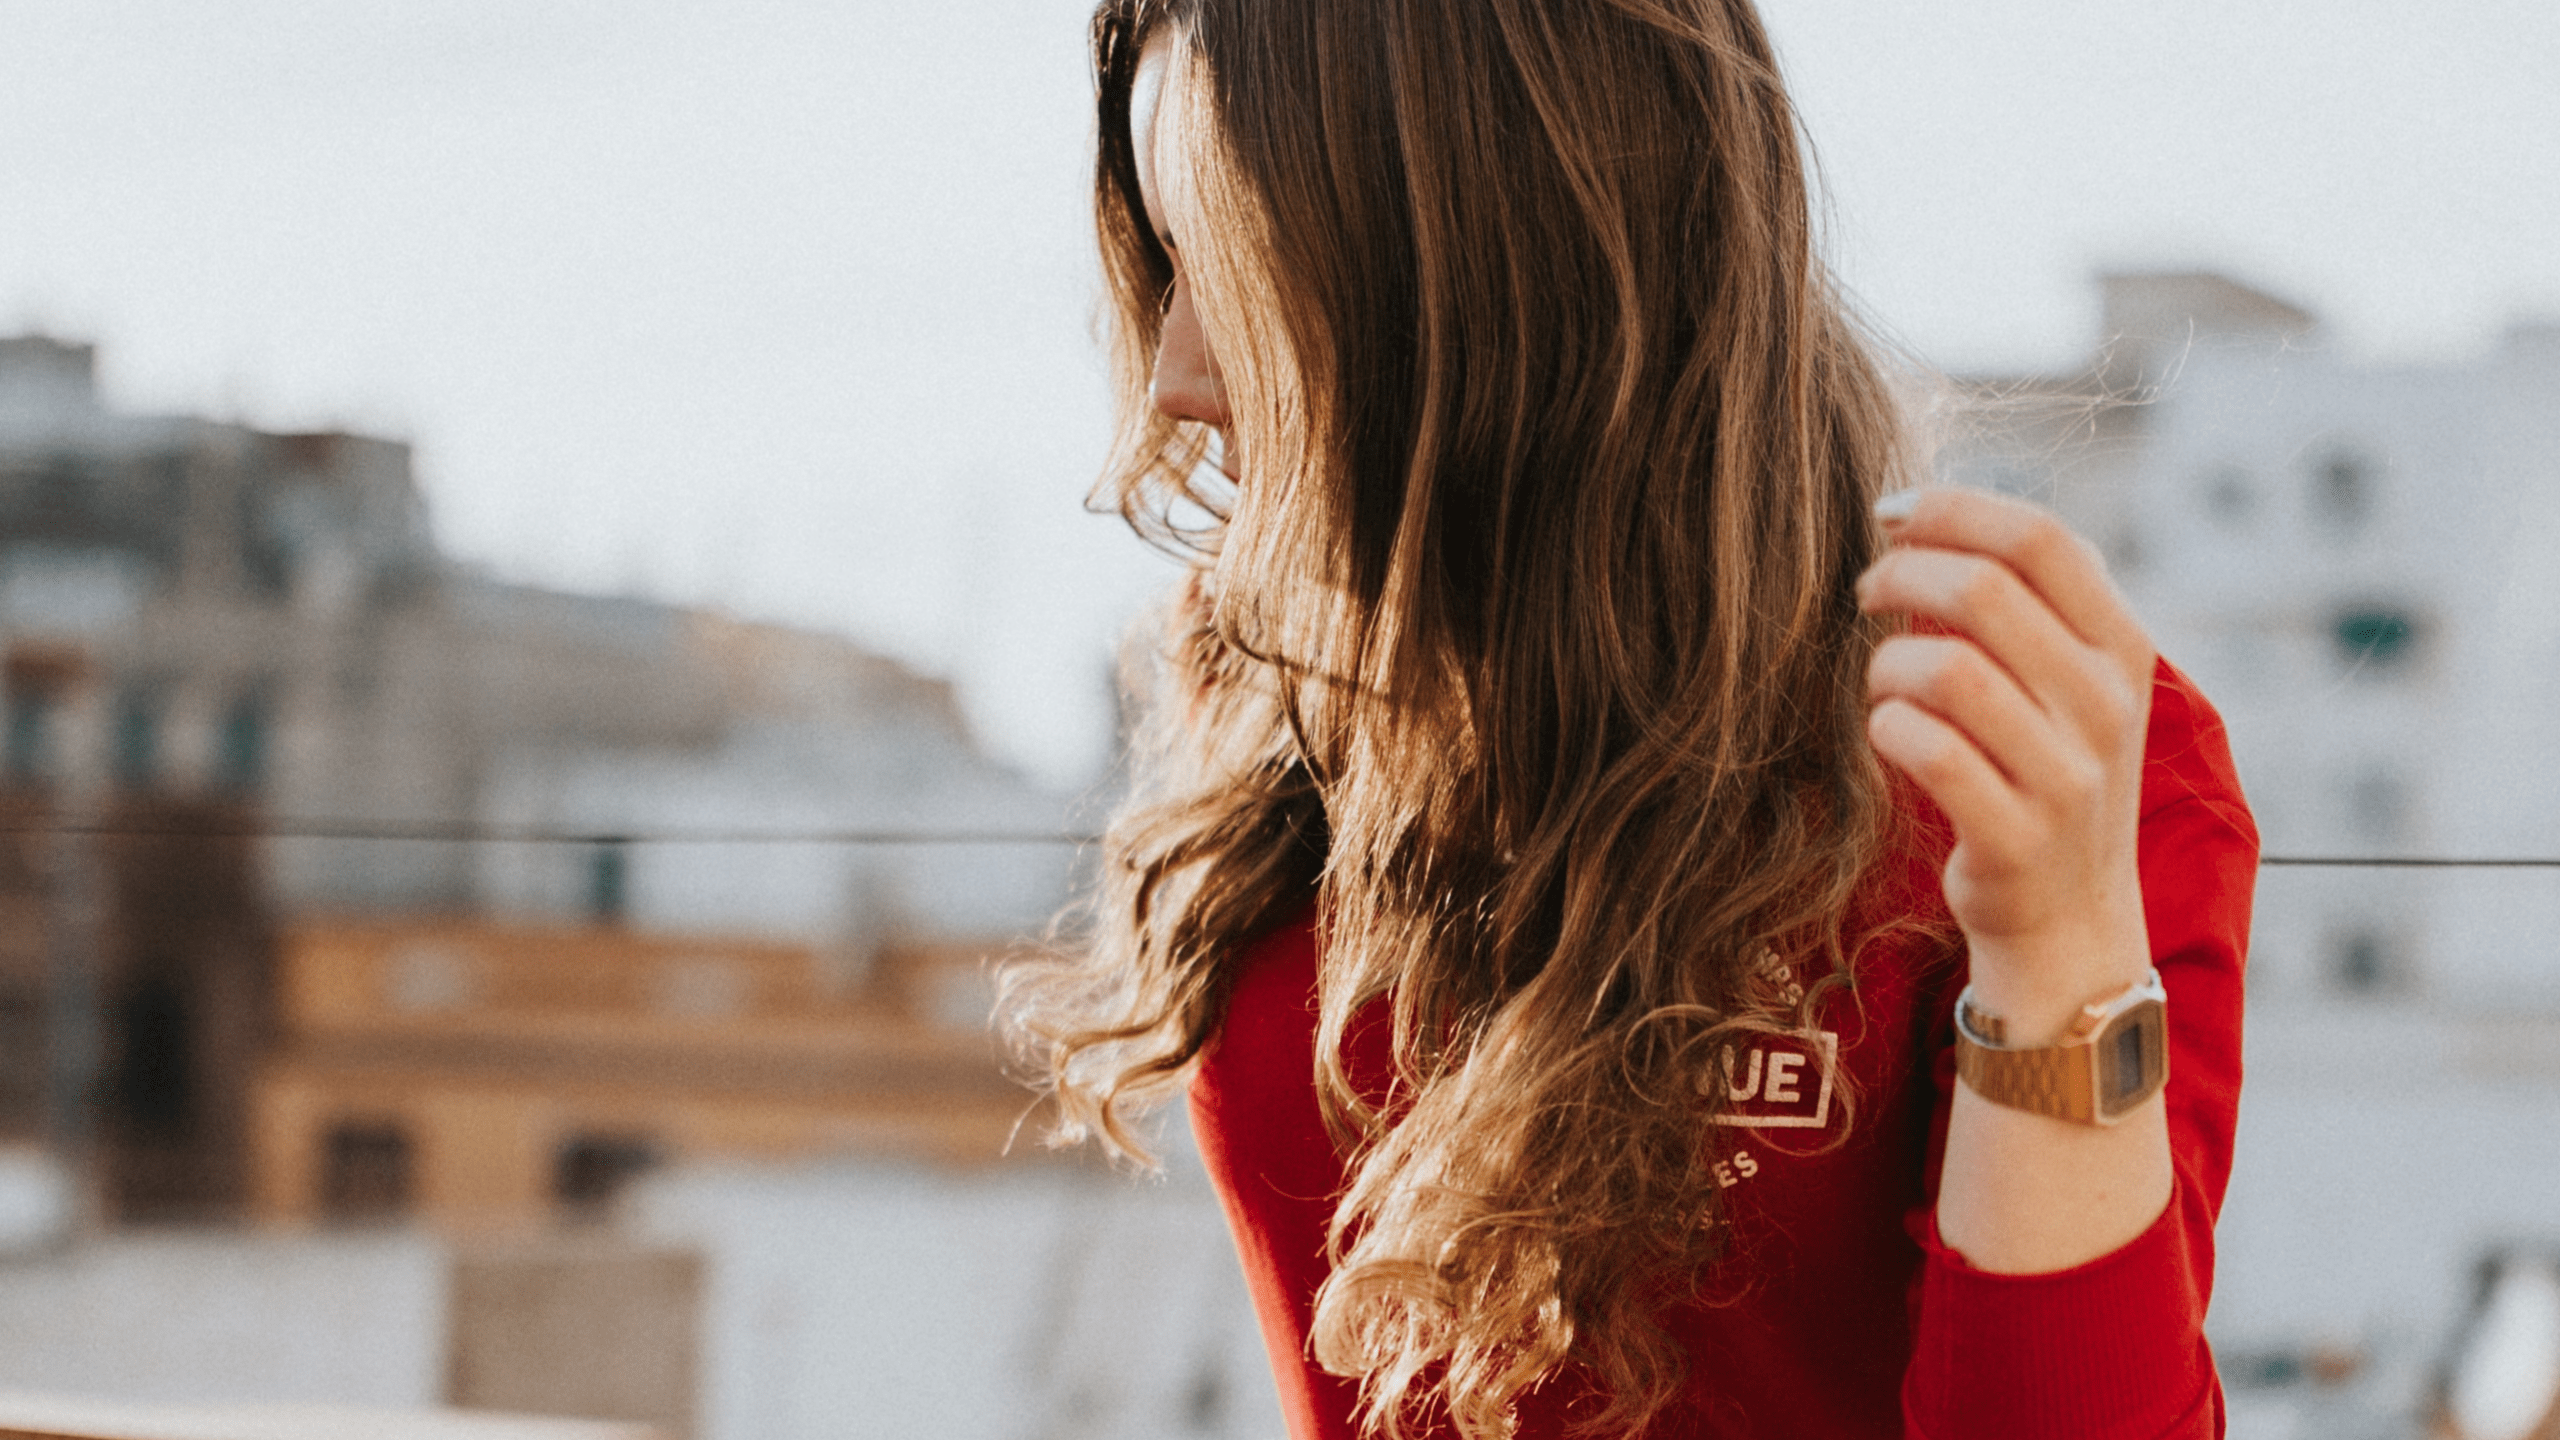 Photo,                FreePhoto,                Obscuring,                Coloring,                Human,                Hair,                Sweater,                Girl,                White,                Black,                Red,                 Free Image